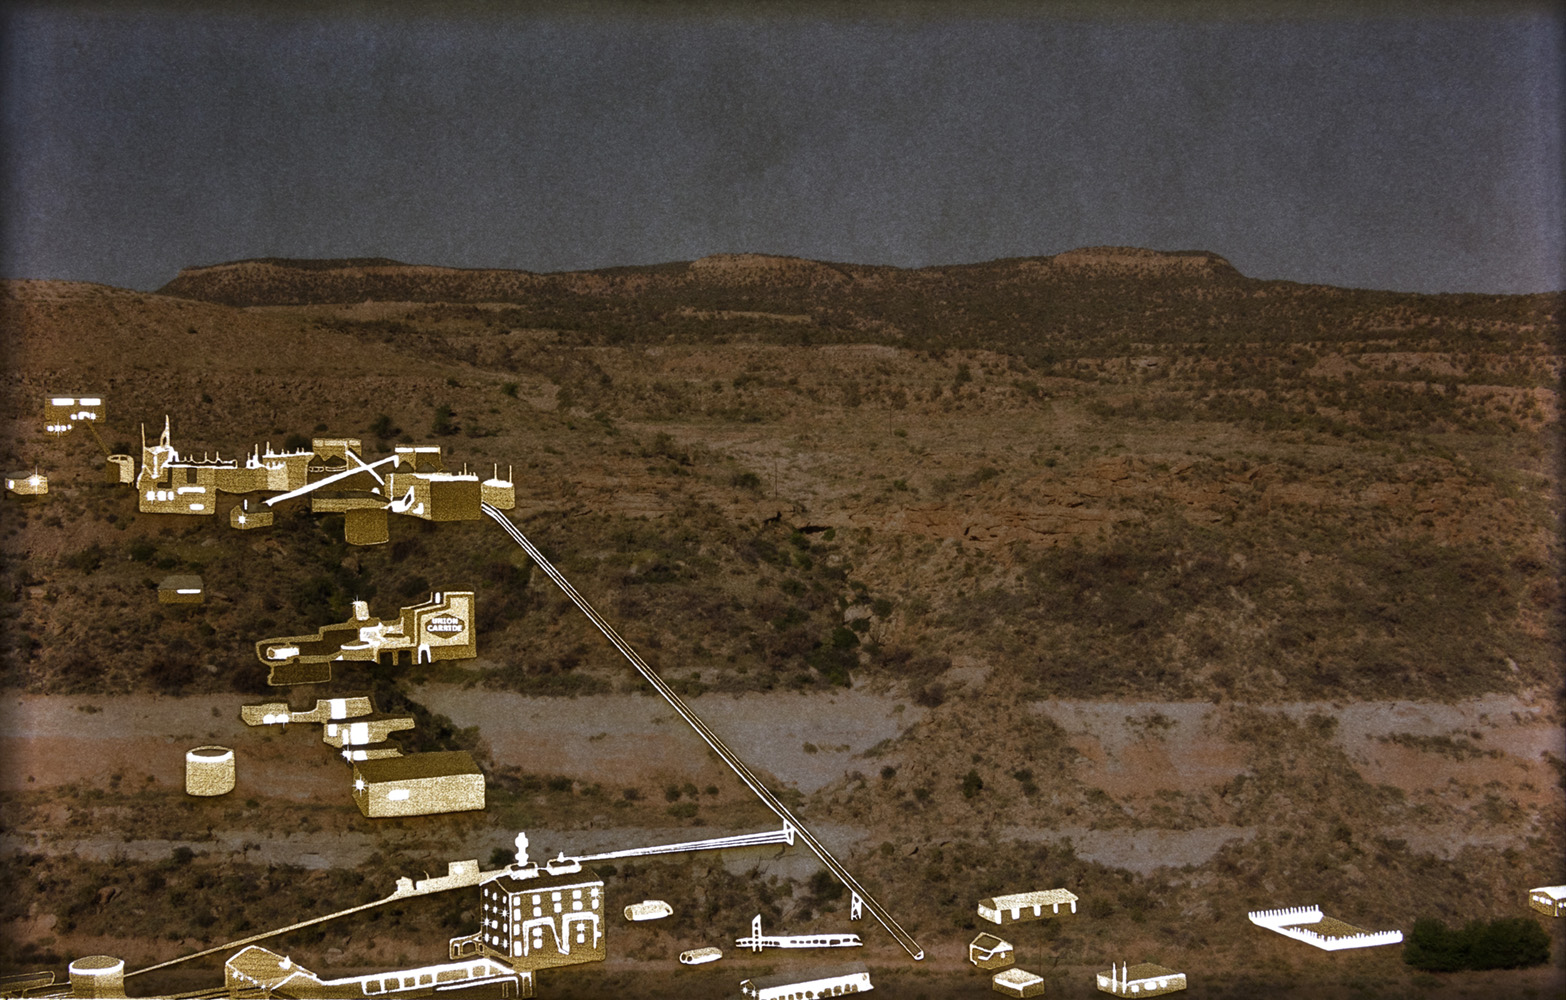 Gritty, darkened image of arid landscape with built structures burnt and cut into the surface and appearing in brown or backlit white.